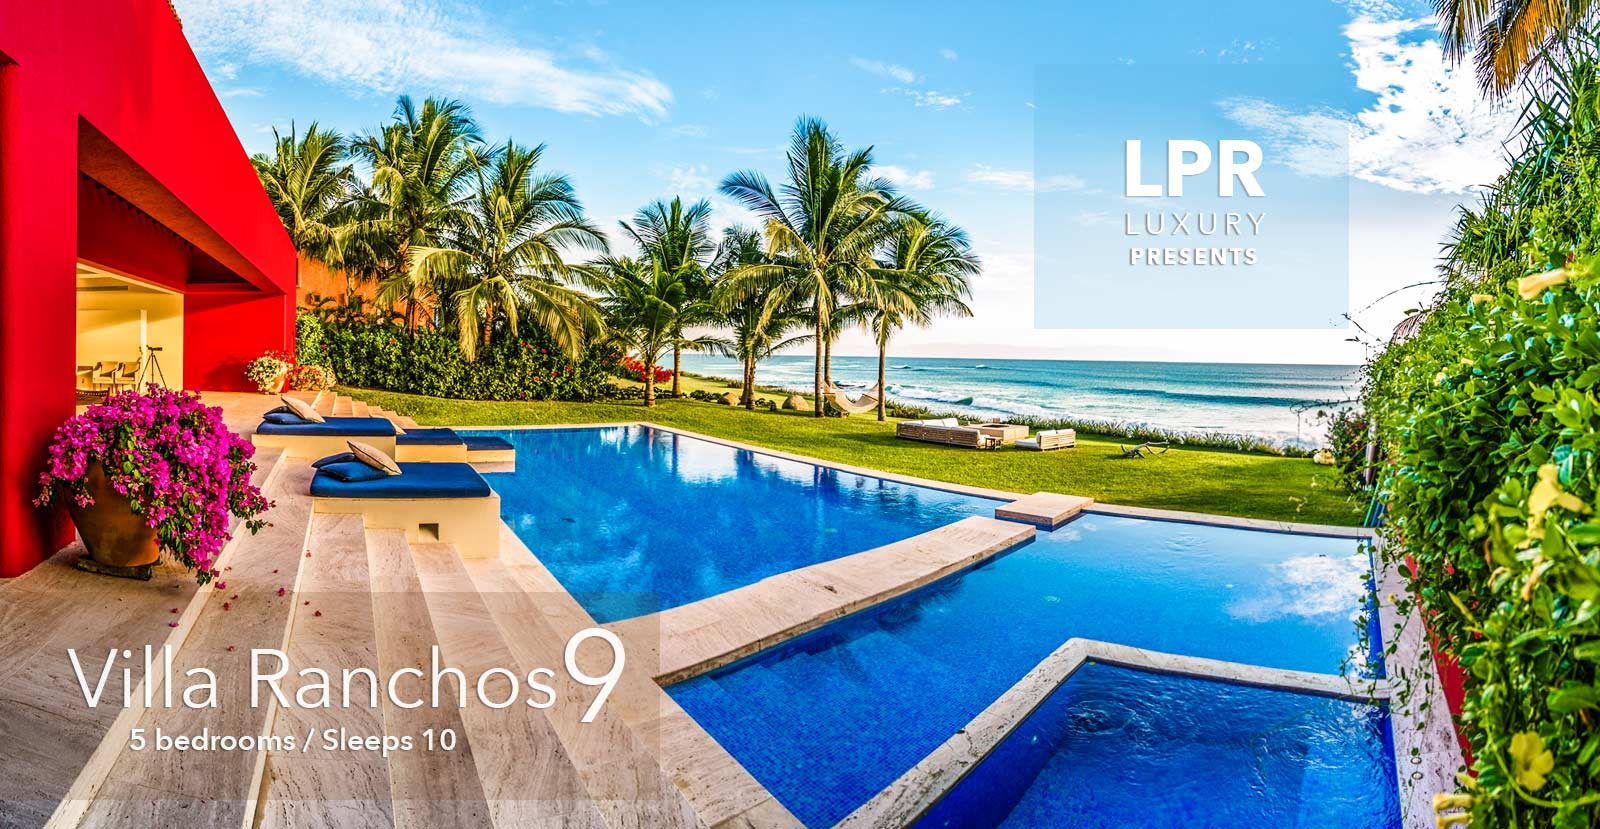 Villa Ranchos 9 - Luxury Punta Mita Real Estate and Vacation Rentals Villas